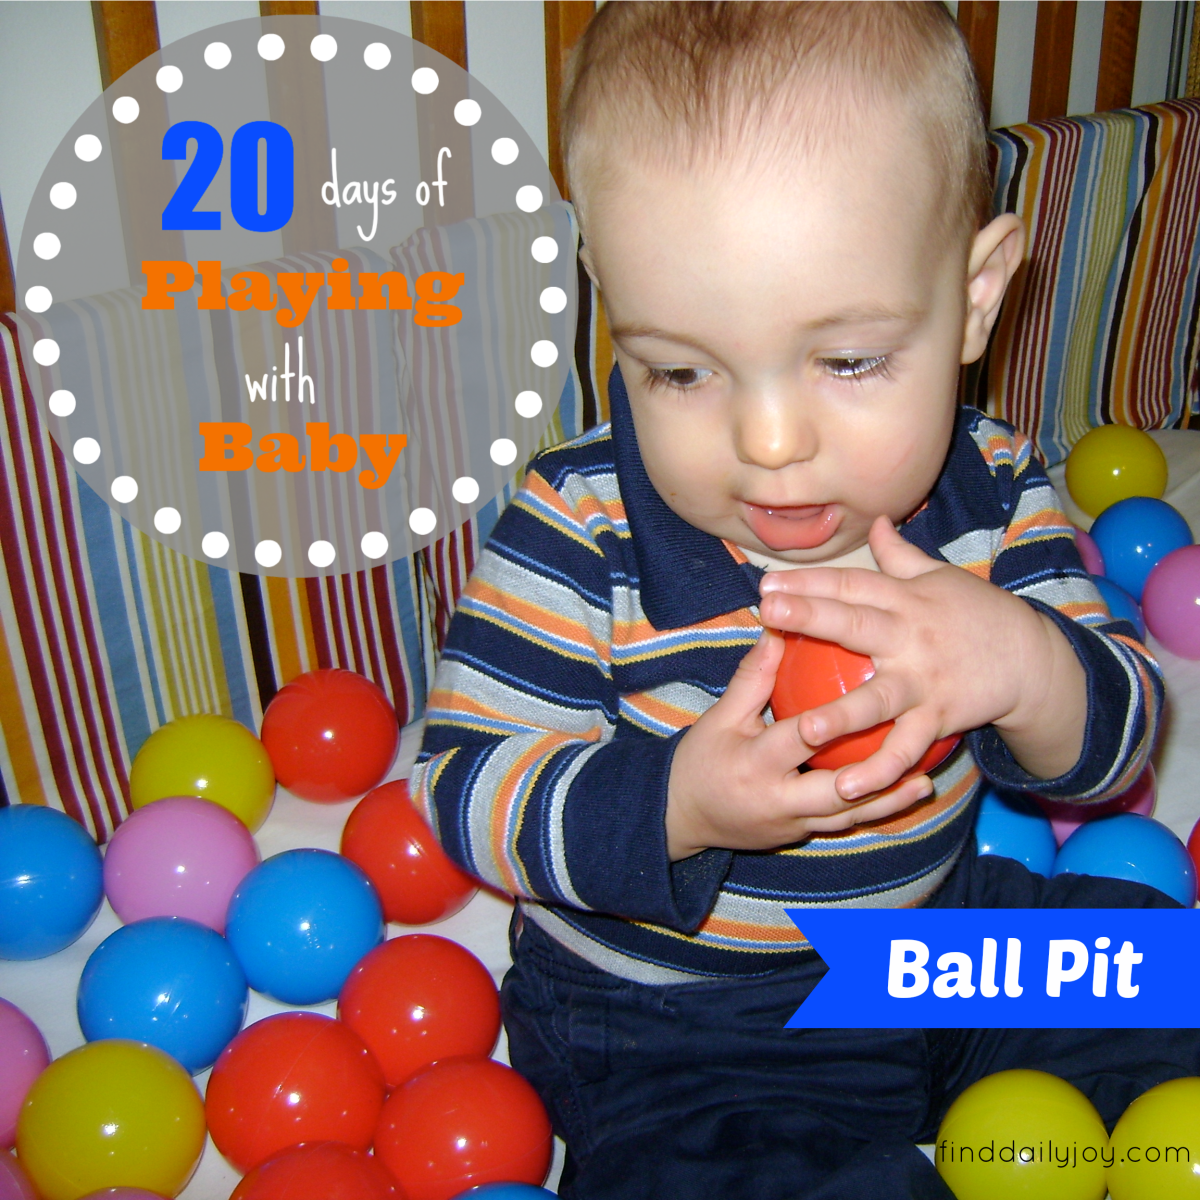 Ball Pit {Playing With Baby, Day 14}